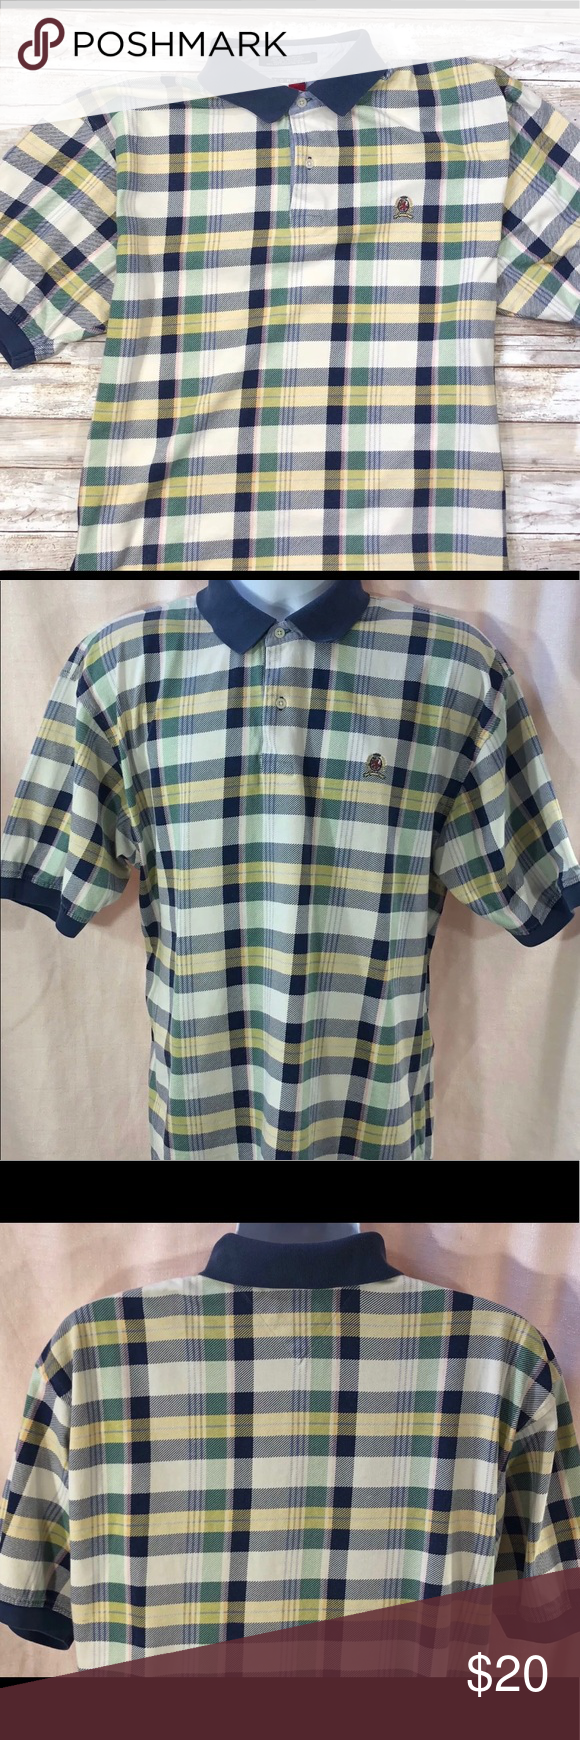 3fbc4d488 Vintage Men's Plaid Tommy Hilfiger Polo Large Vintage Tommy Hilfiger Green  White Blue Plaid Checkered Short Sleeve Polo Shirt Large * This item is in  ...